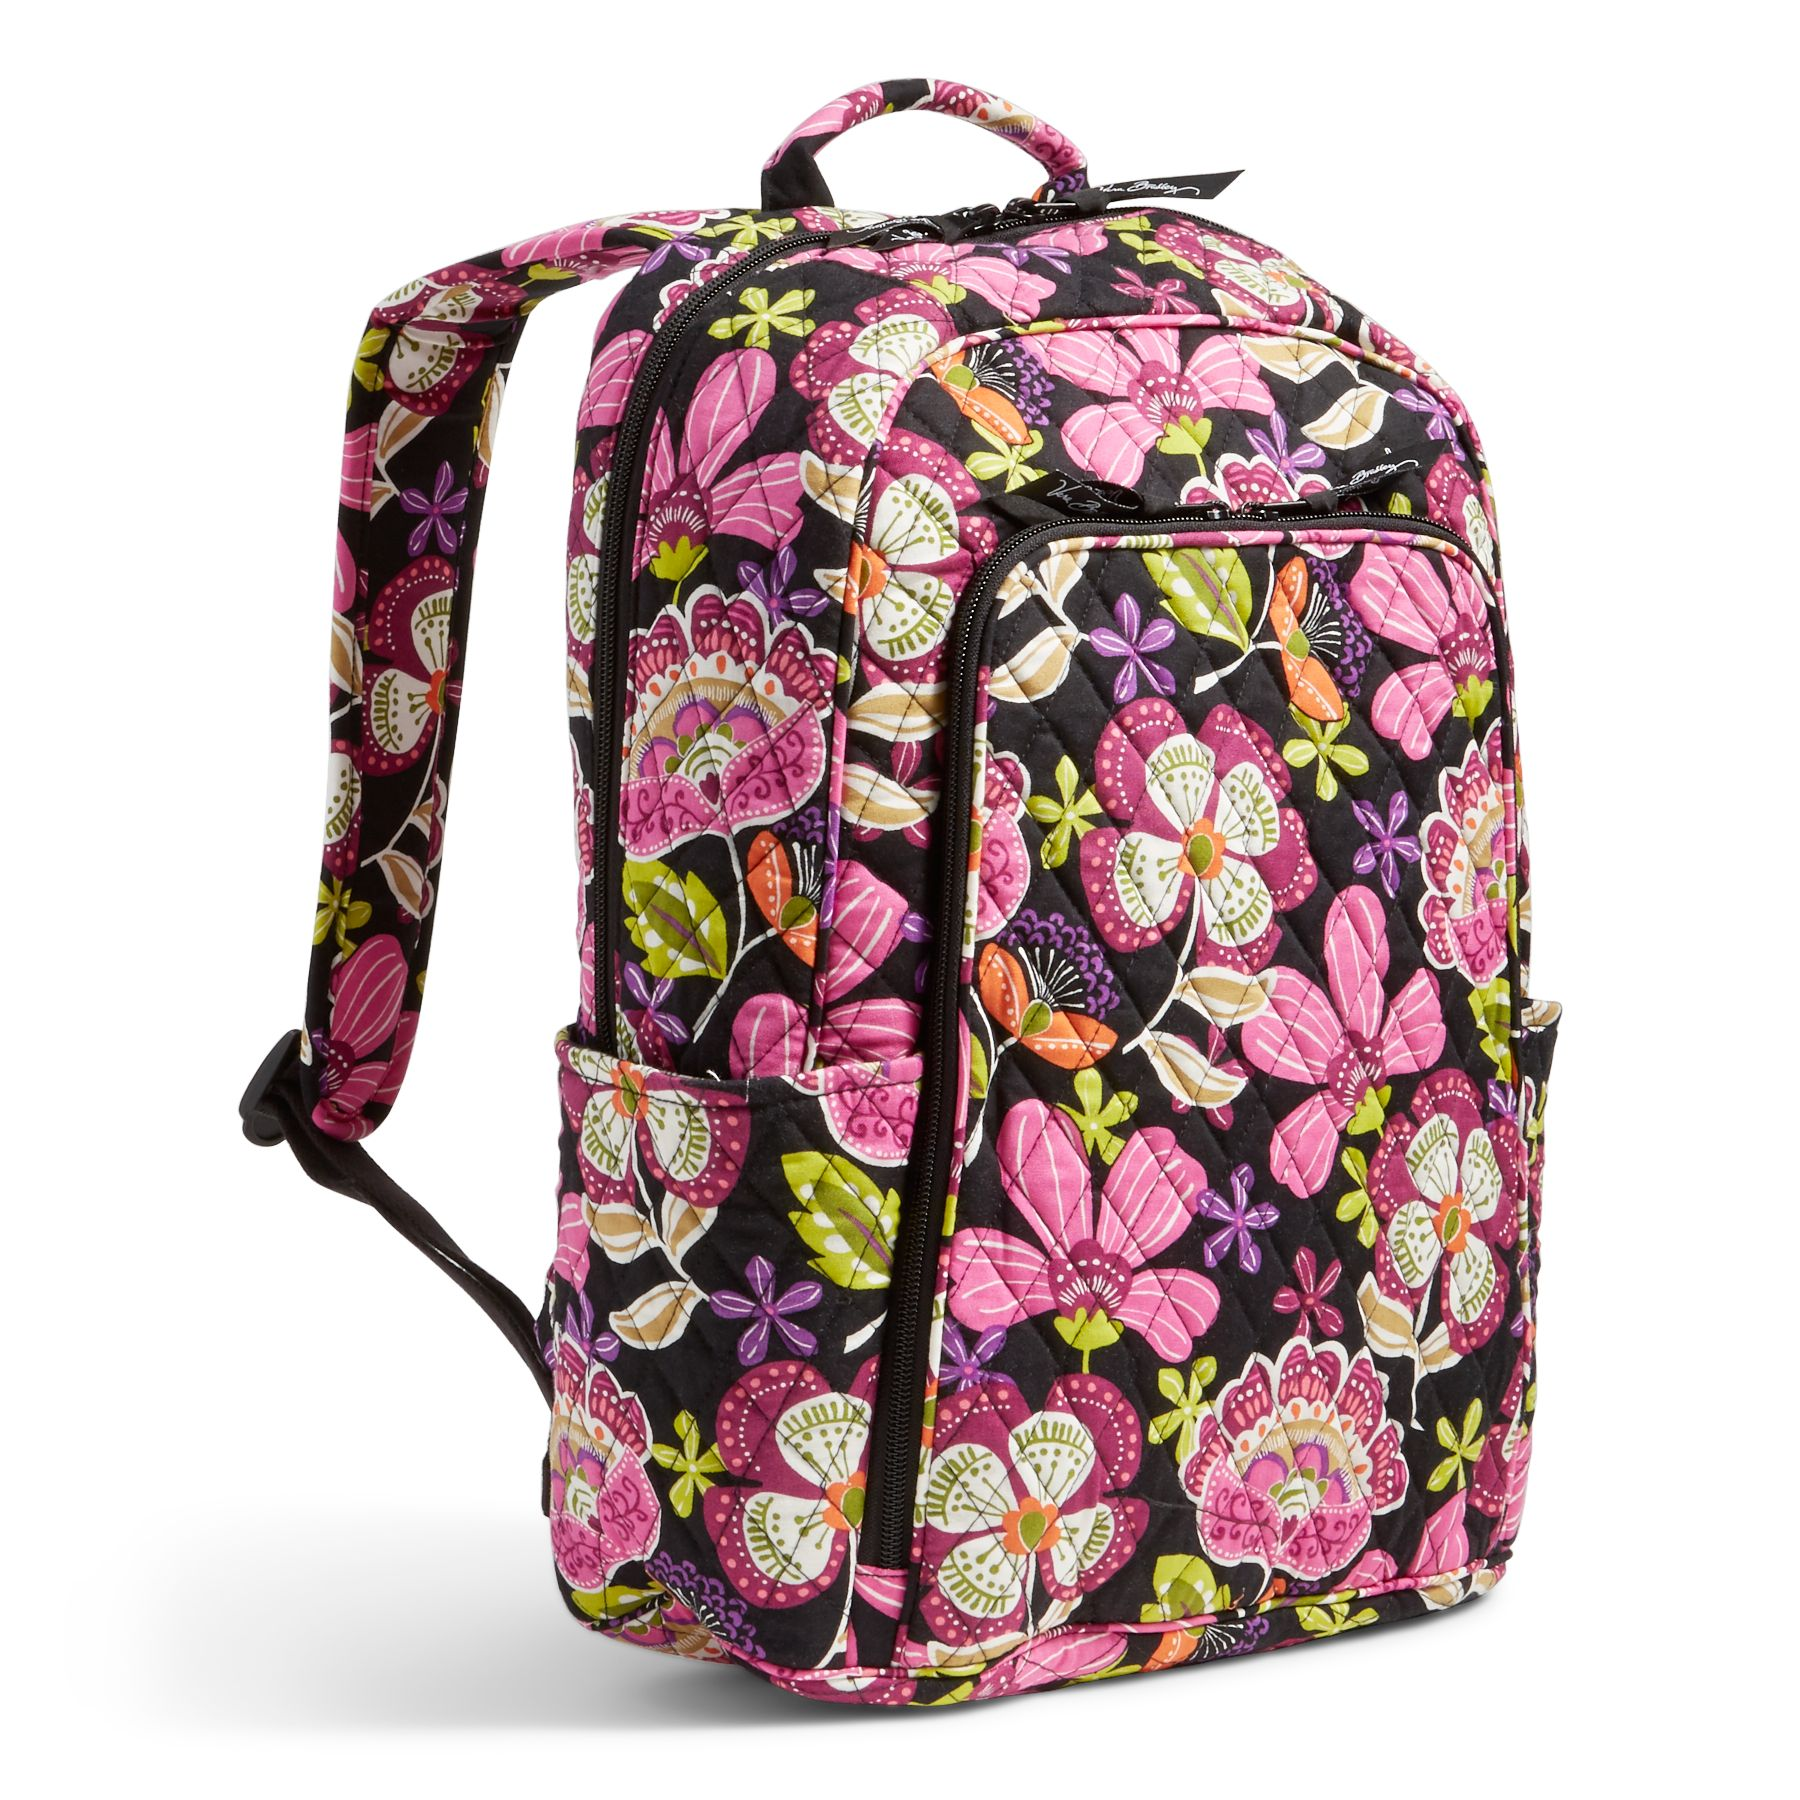 276734c2be02 Vera Bradley Backpack With Laptop Pocket- Fenix Toulouse Handball